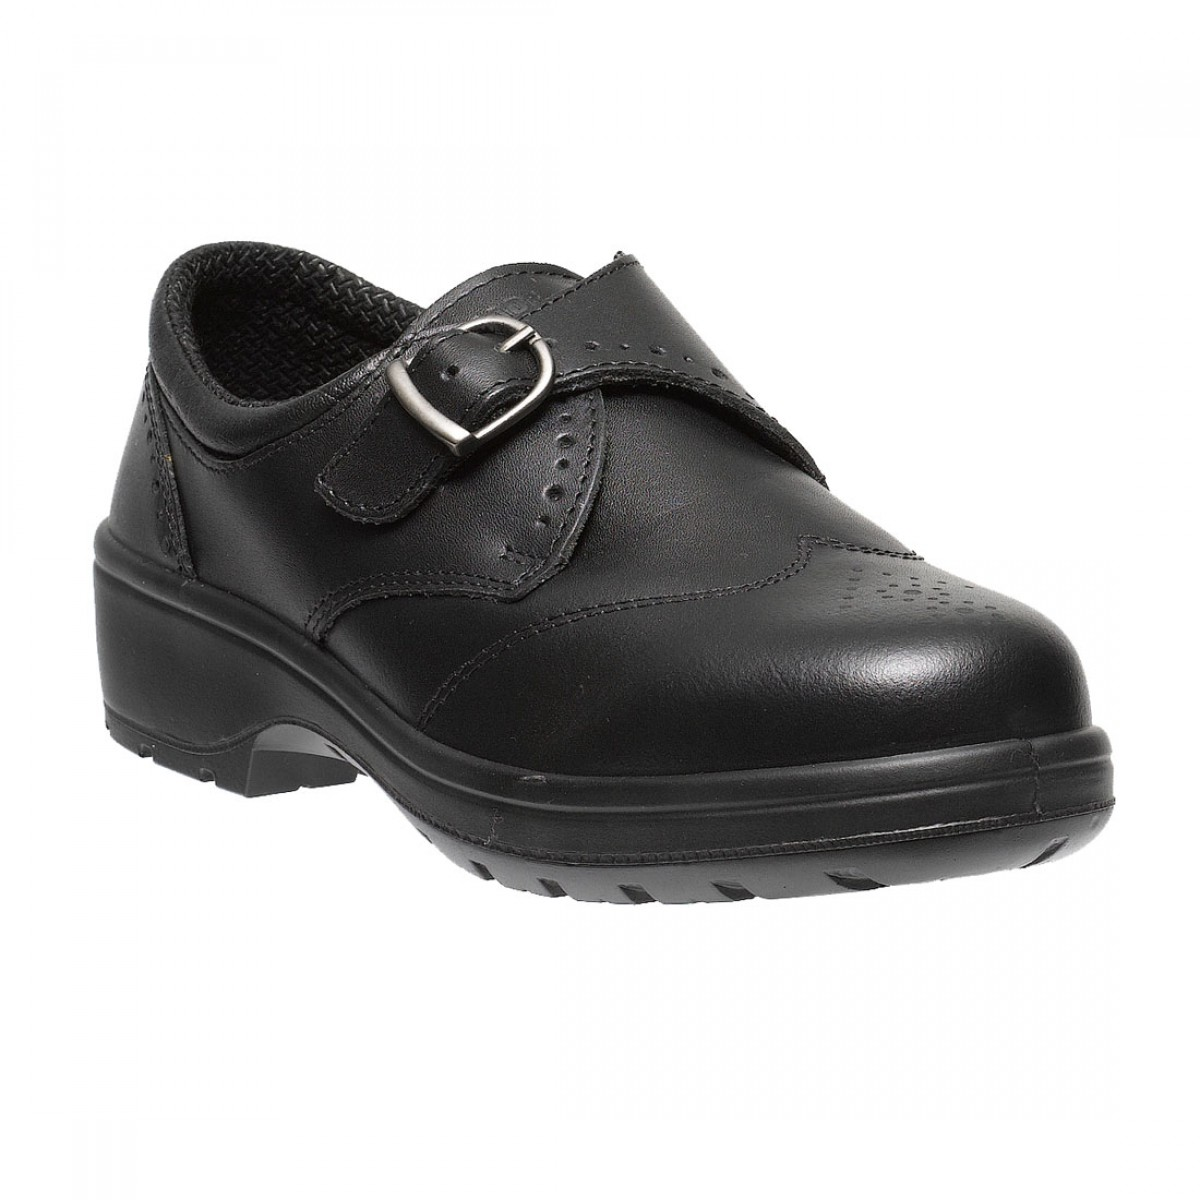 3e59ddc496d Executive Safety Shoes, Non Metal and Smart Steel Toe Cap Work Shoes